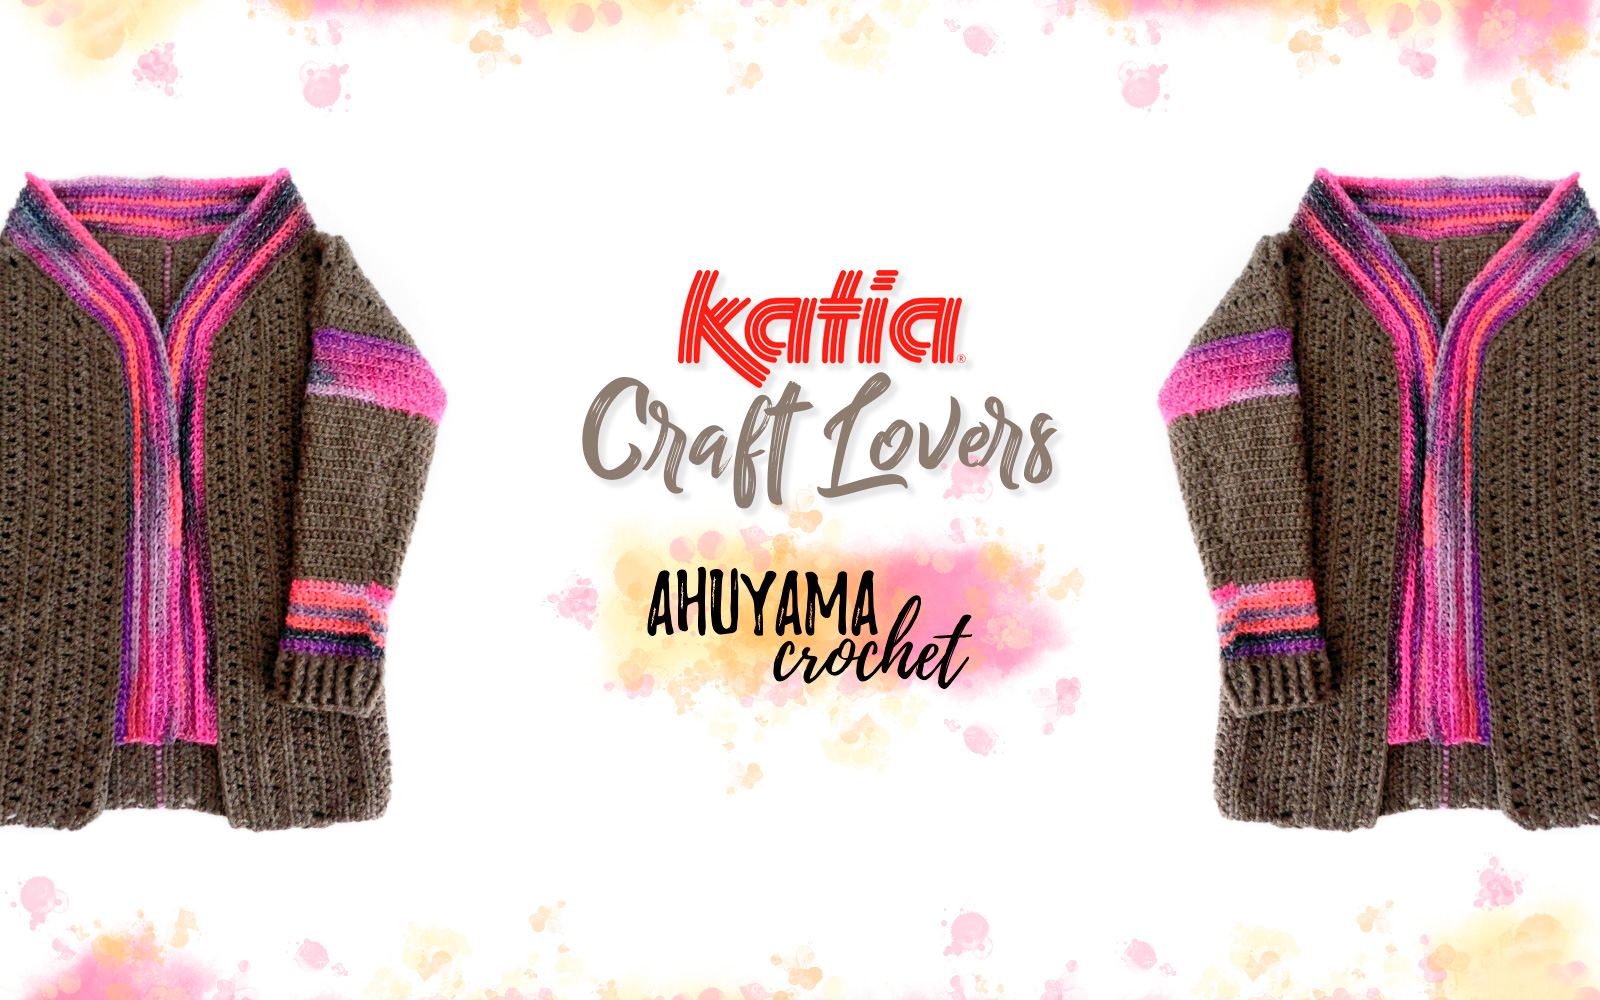 How to make a crochet coat: pattern and video by Ahuyama Crochet